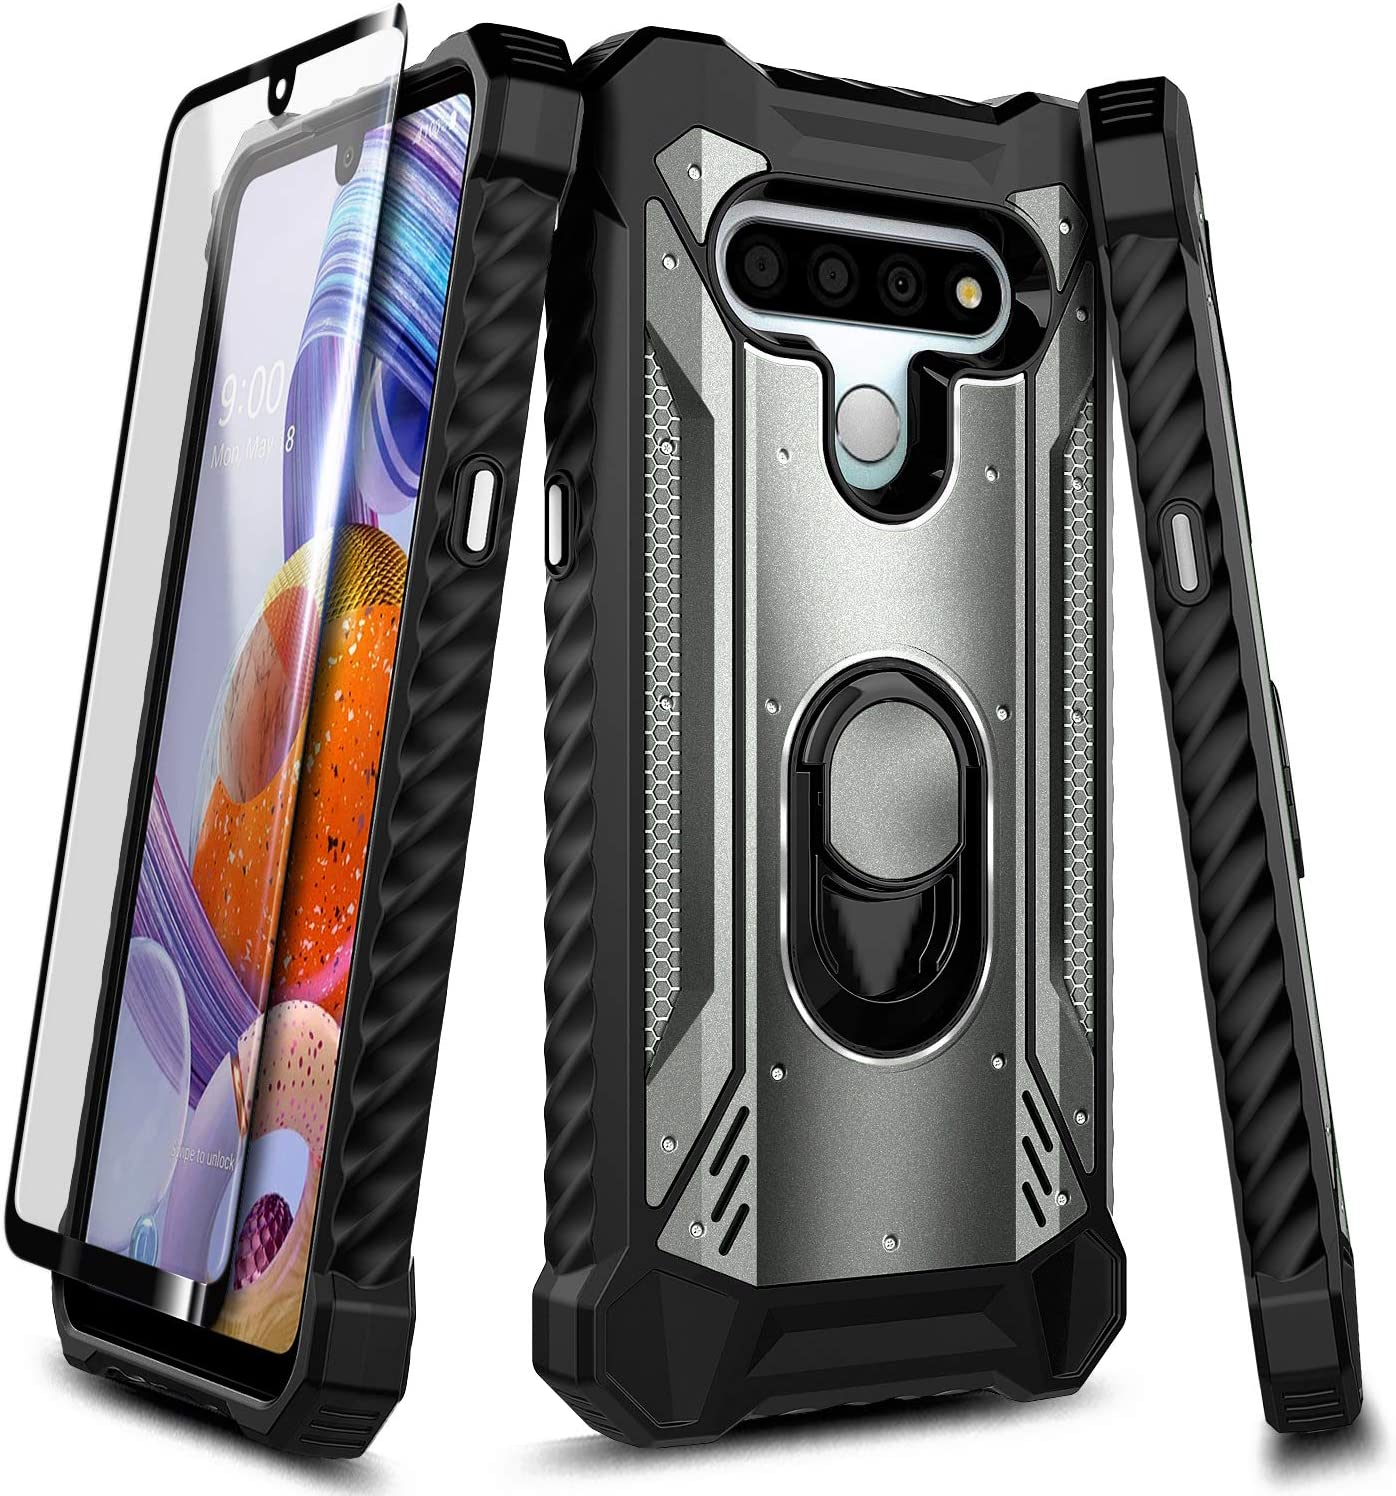 E-Began Case for LG Phoenix 5, LG K31 Rebel L355DL/Aristo 5/K31/Tribute Monarch/LG K8X/Fortune 3/Risio 4 with Tempered Glass Screen Protector, Magnetic Metal Ring Holder, Full-Body Protective -Gray